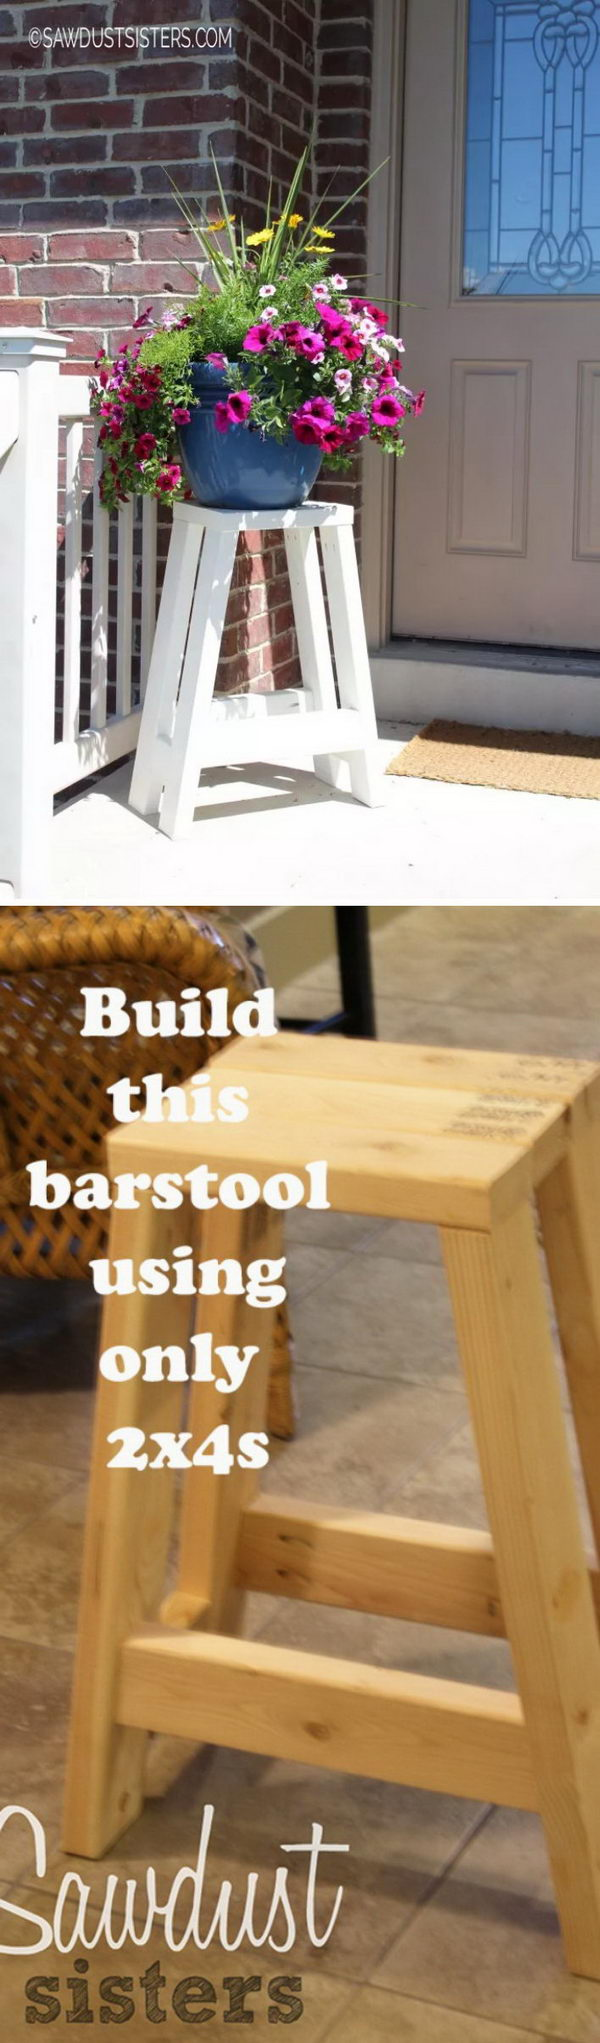 DIY Barstool Using Only 2x4s.